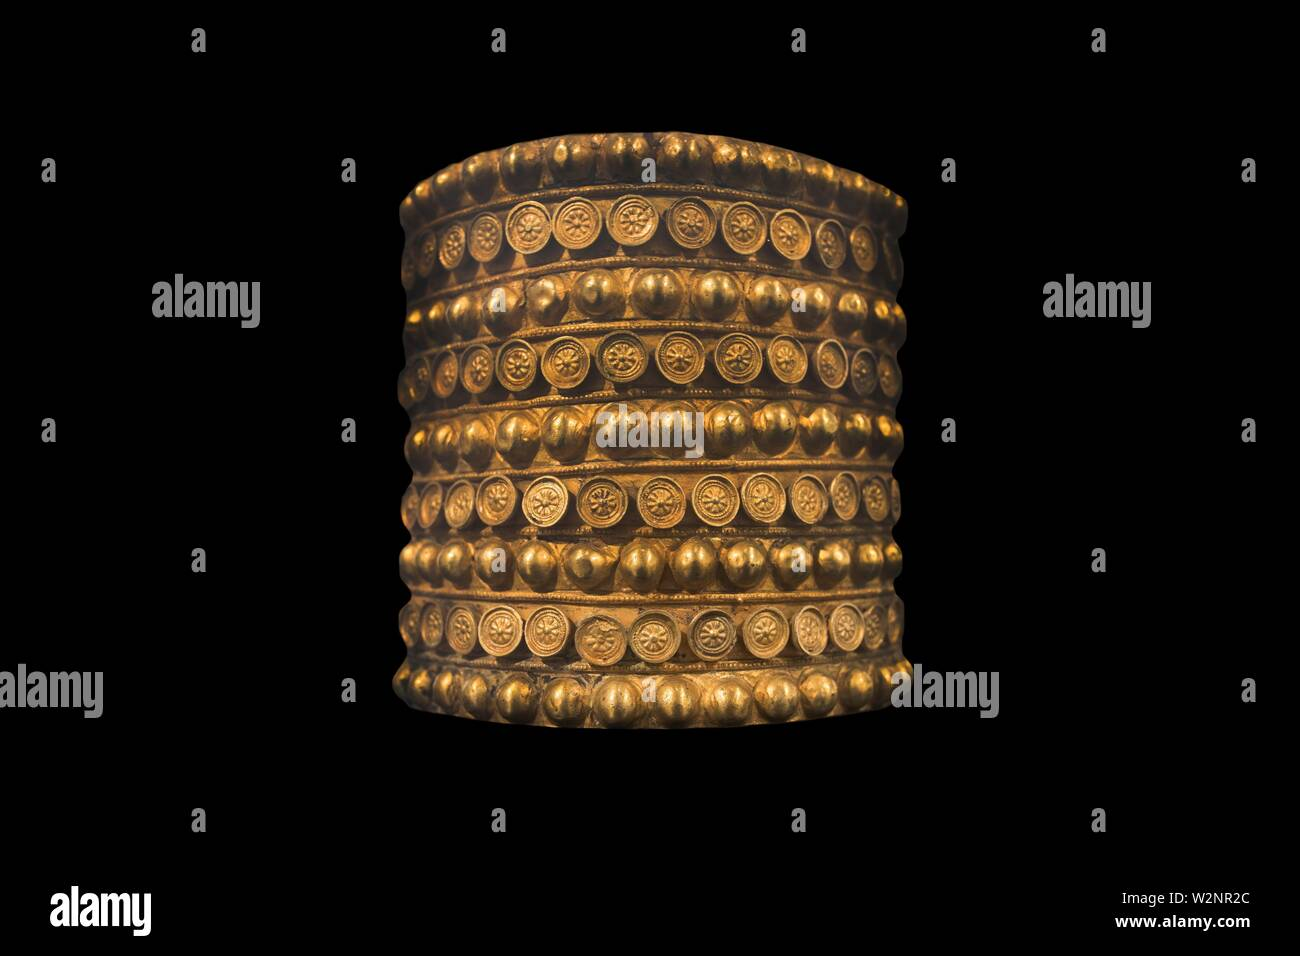 Treasure of El Carambolo Bracelet, Archaeological Museum of Seville, Andalusia, Spain. Isolated - Stock Image